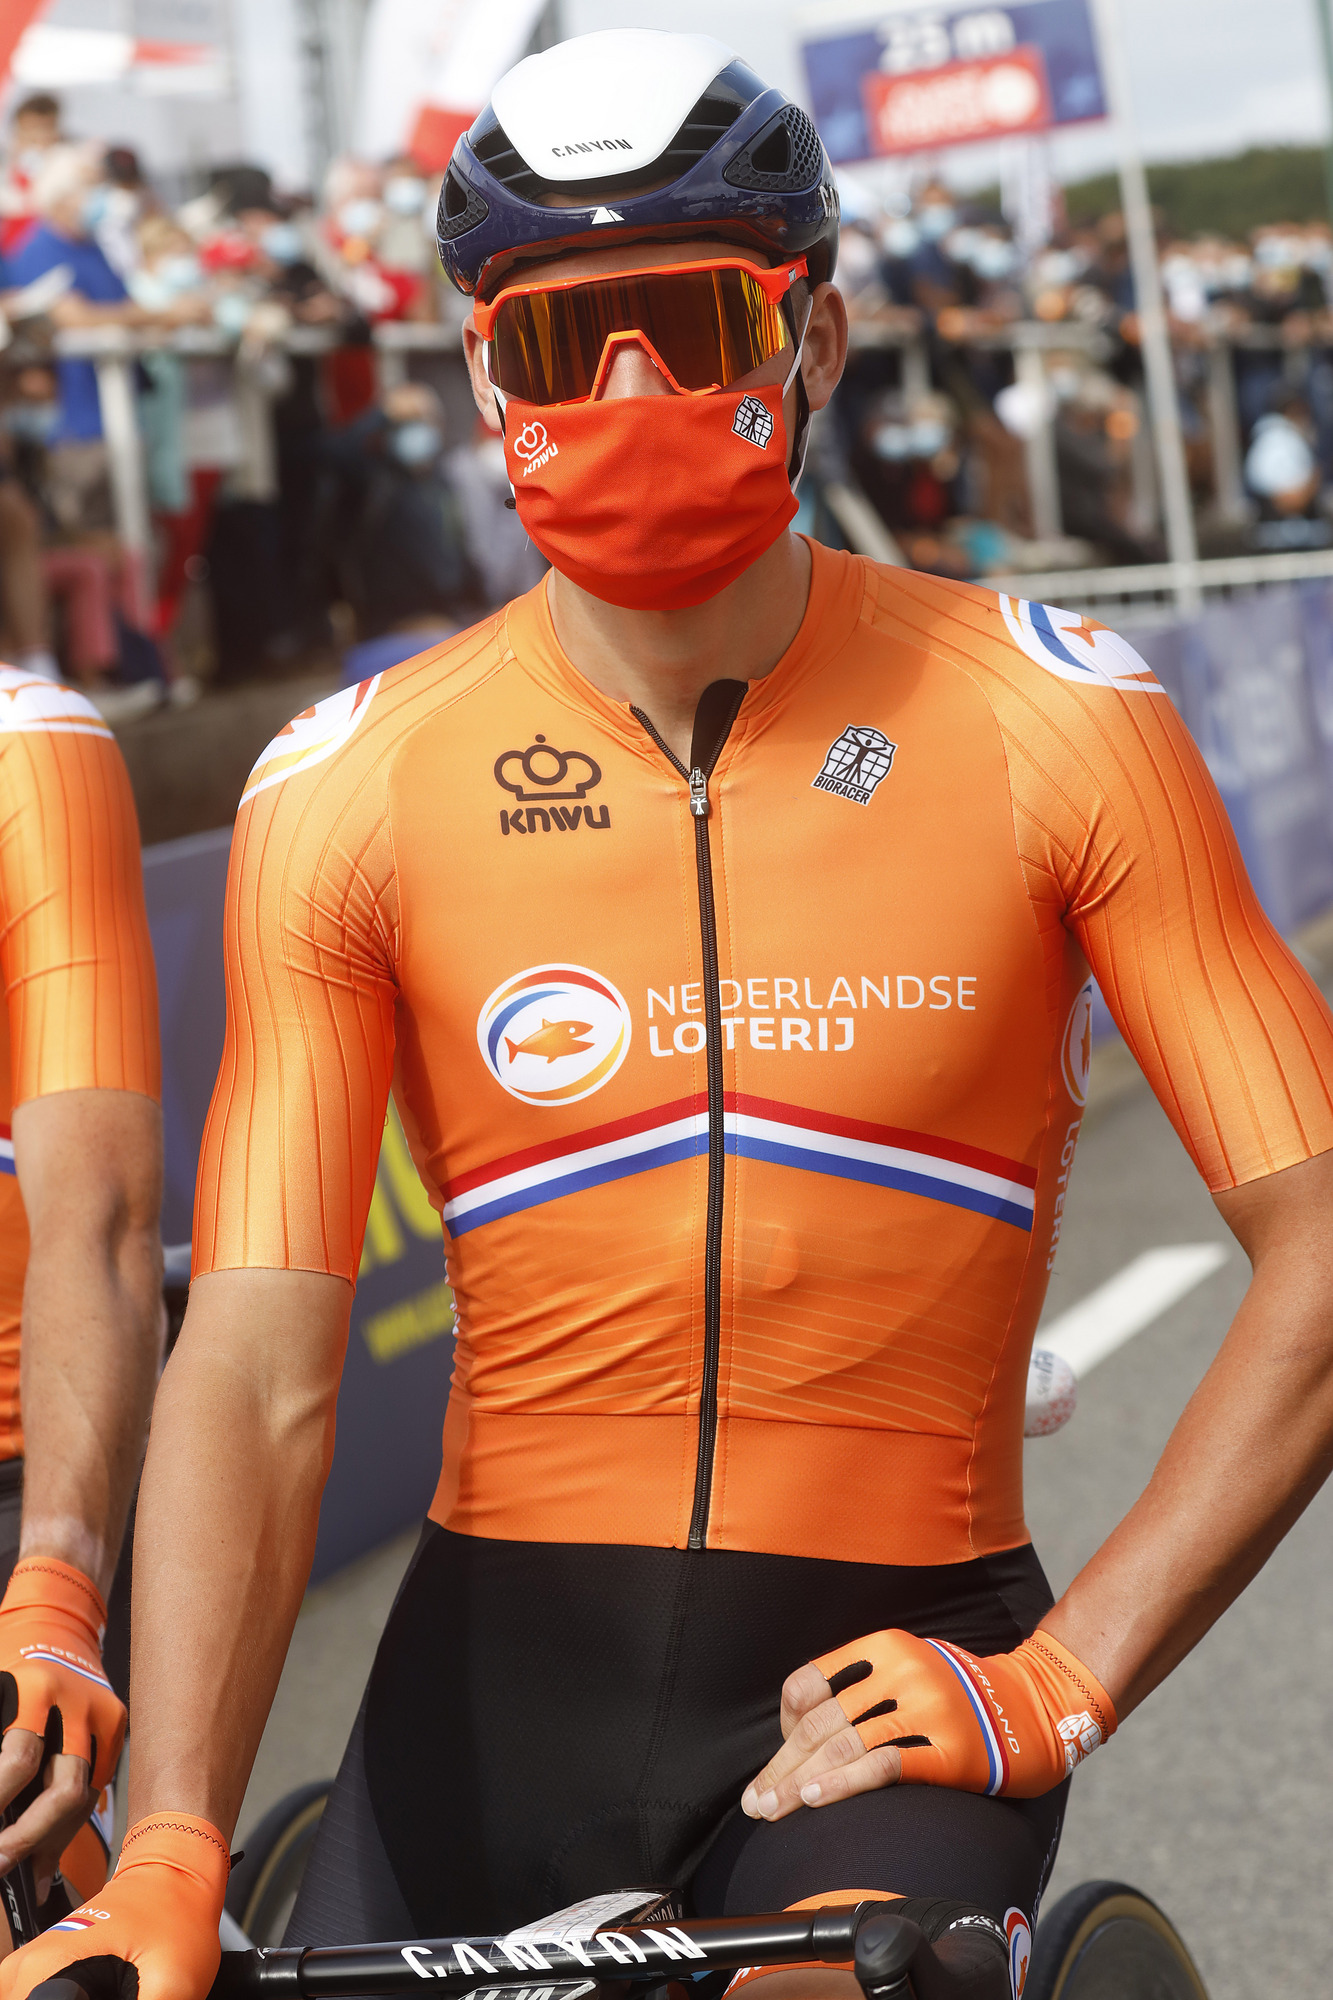 Mathieu van der Poel was hoping to take another championship jersey